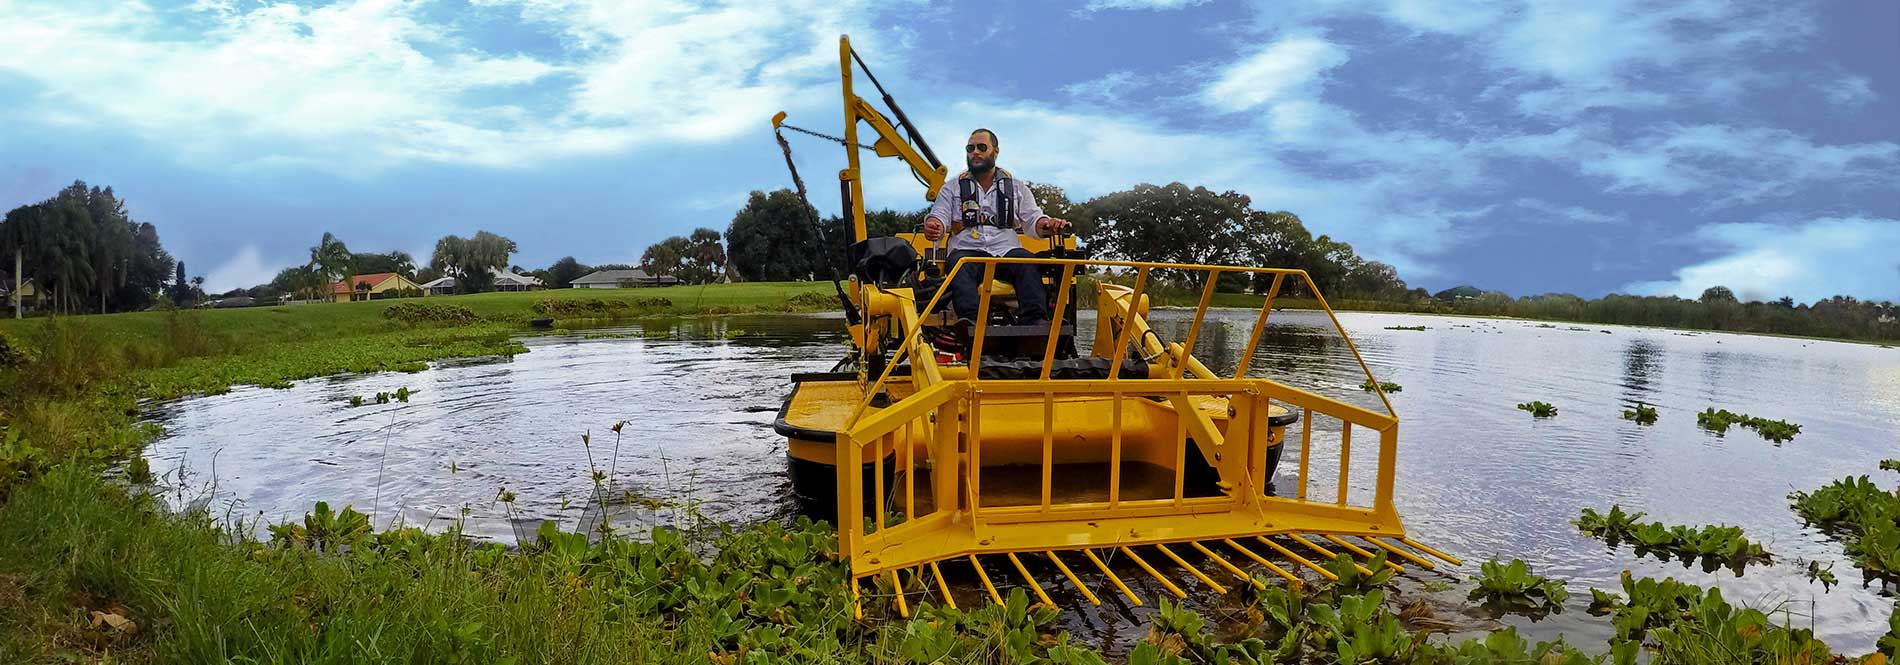 TigerCat aquatic weed removal harvesters